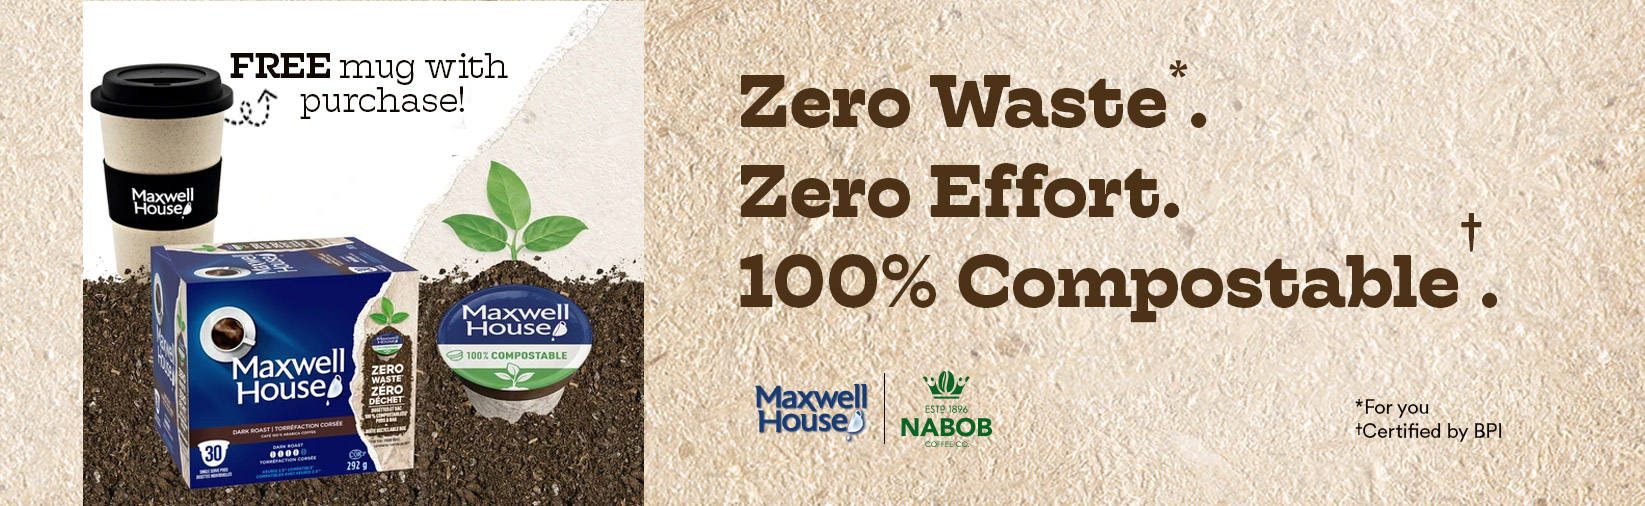 Zero Waste. Zero Effort. 100% Compostable. Purchase your Sustainable Coffee Bundle today.